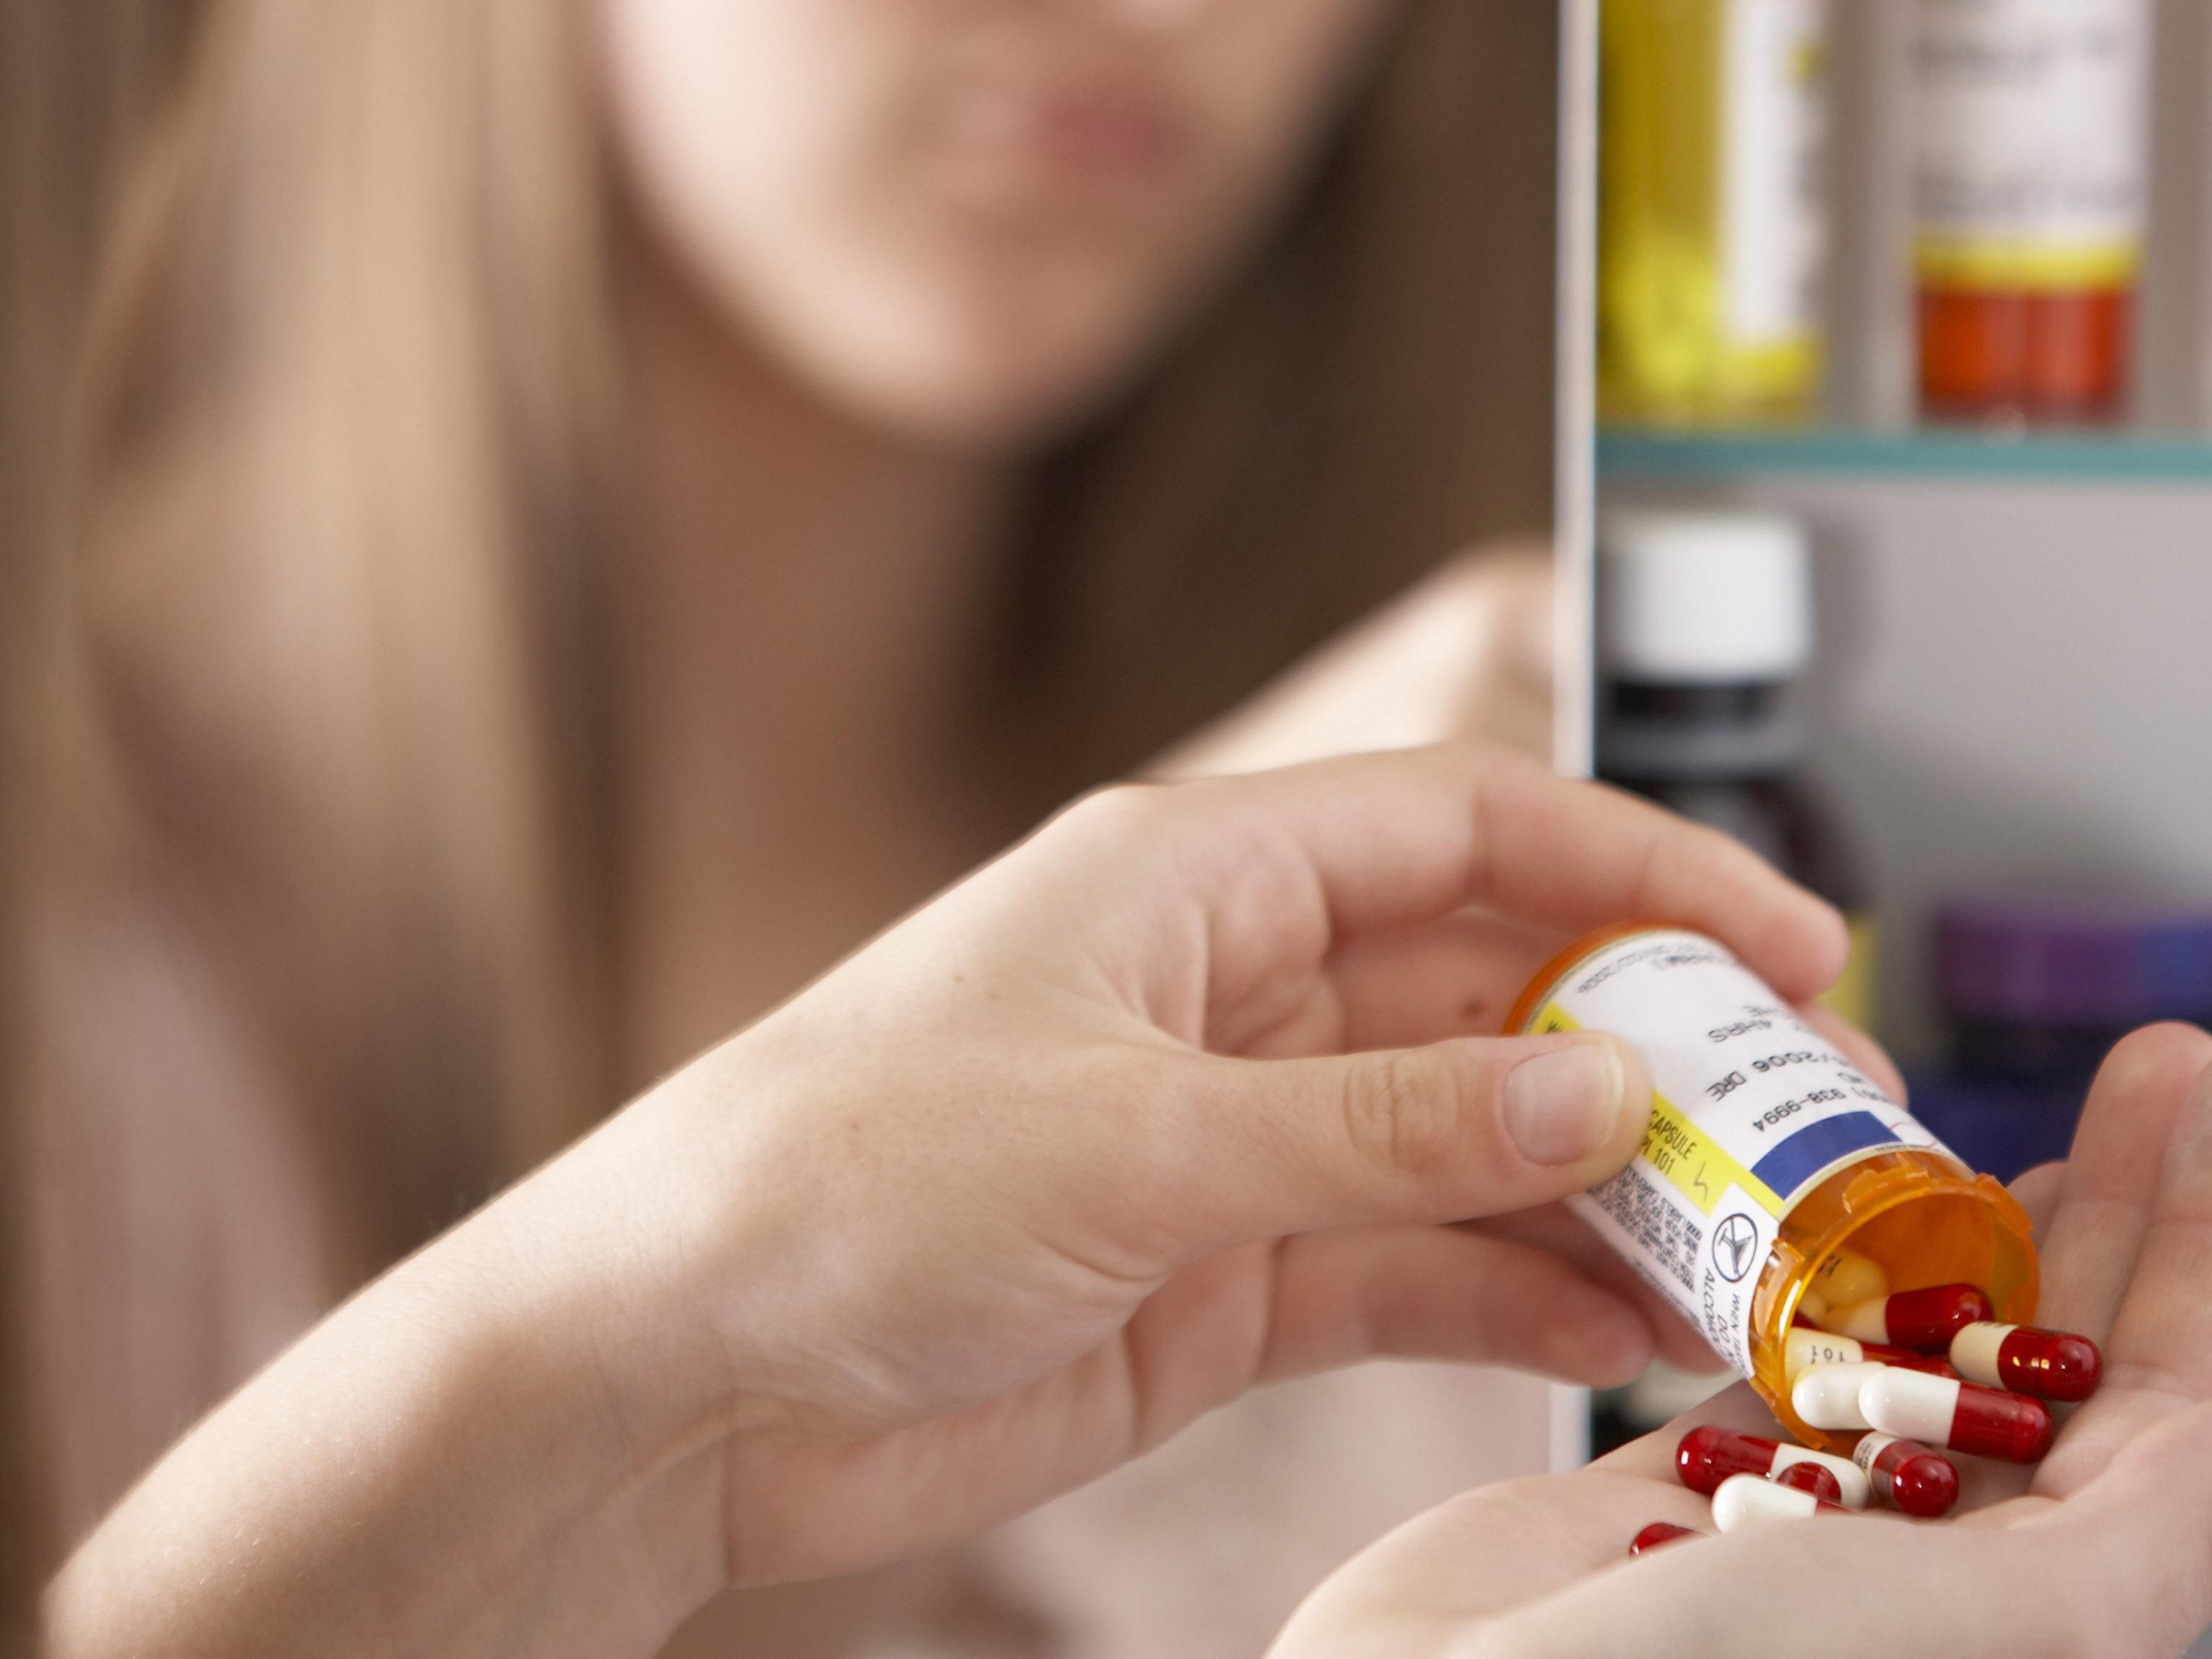 How to Identify Common Pills Abused by Teens